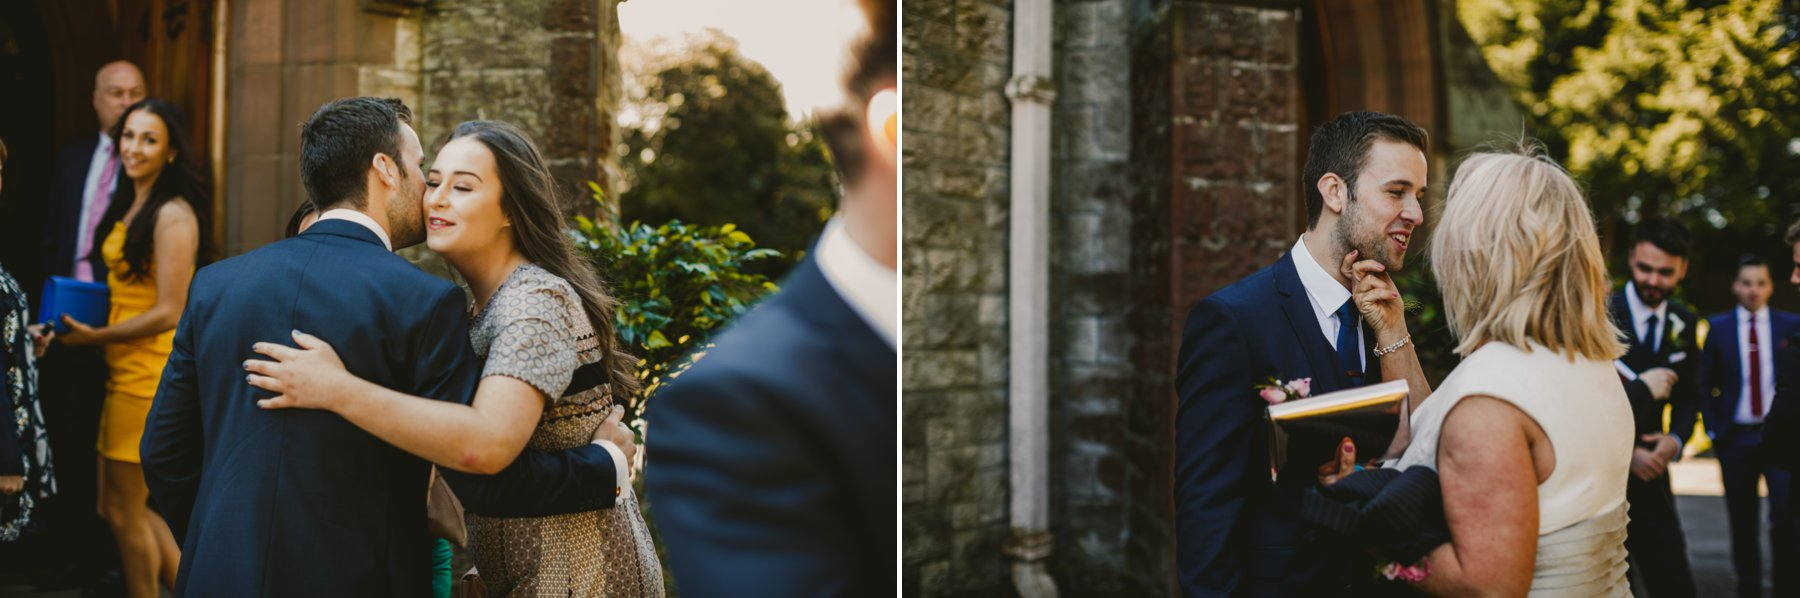 editorial-giantscauseway-weddings_0280